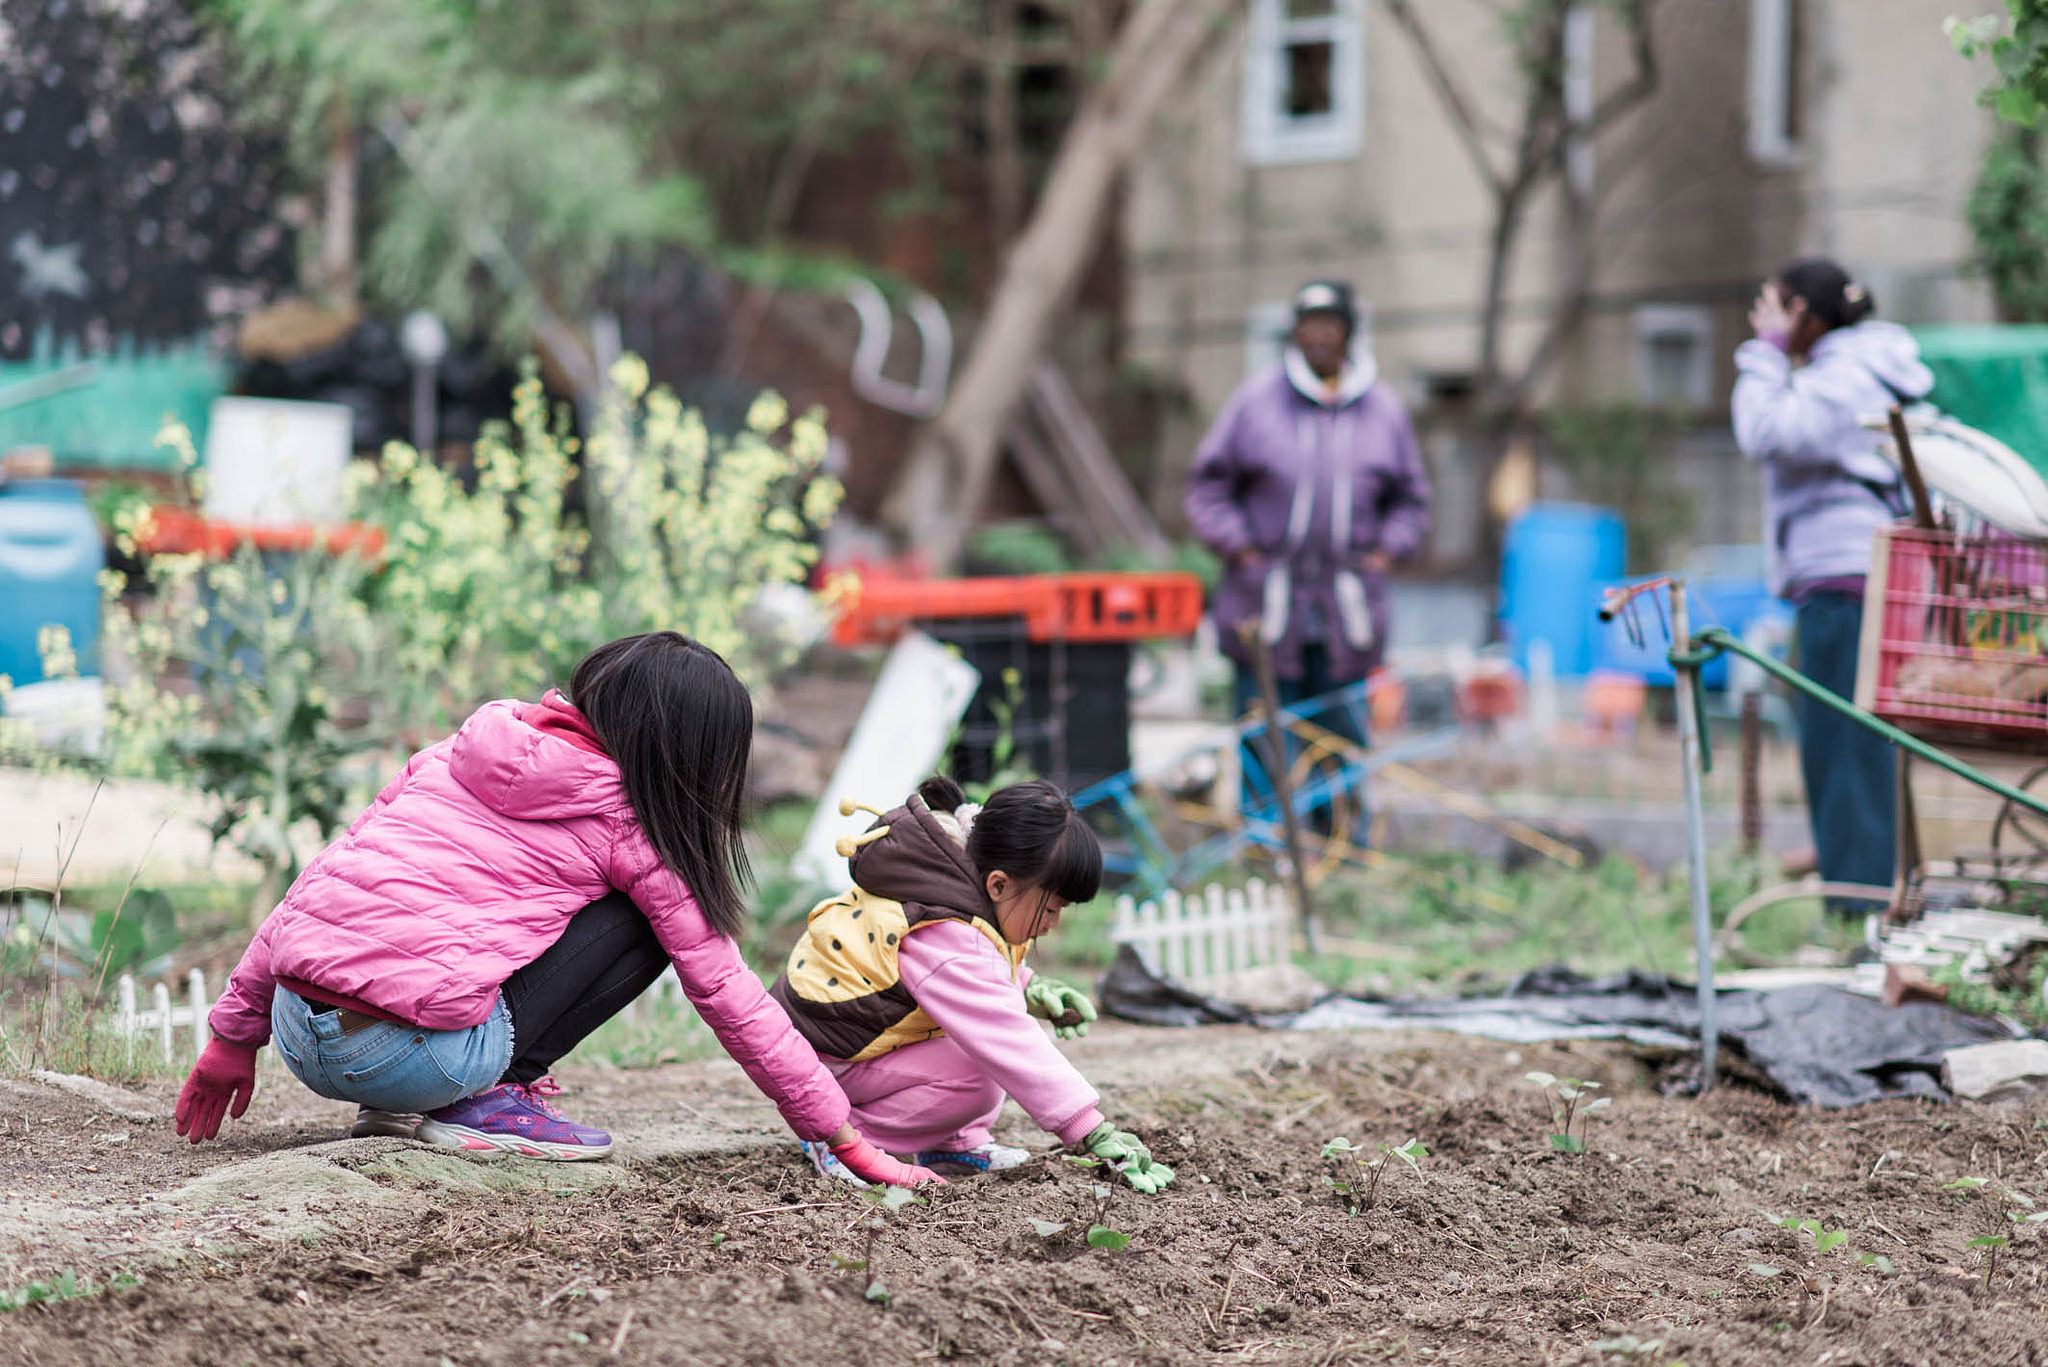 Soil testing day at 25th and Tasker garden | By Ali Marisa Photography